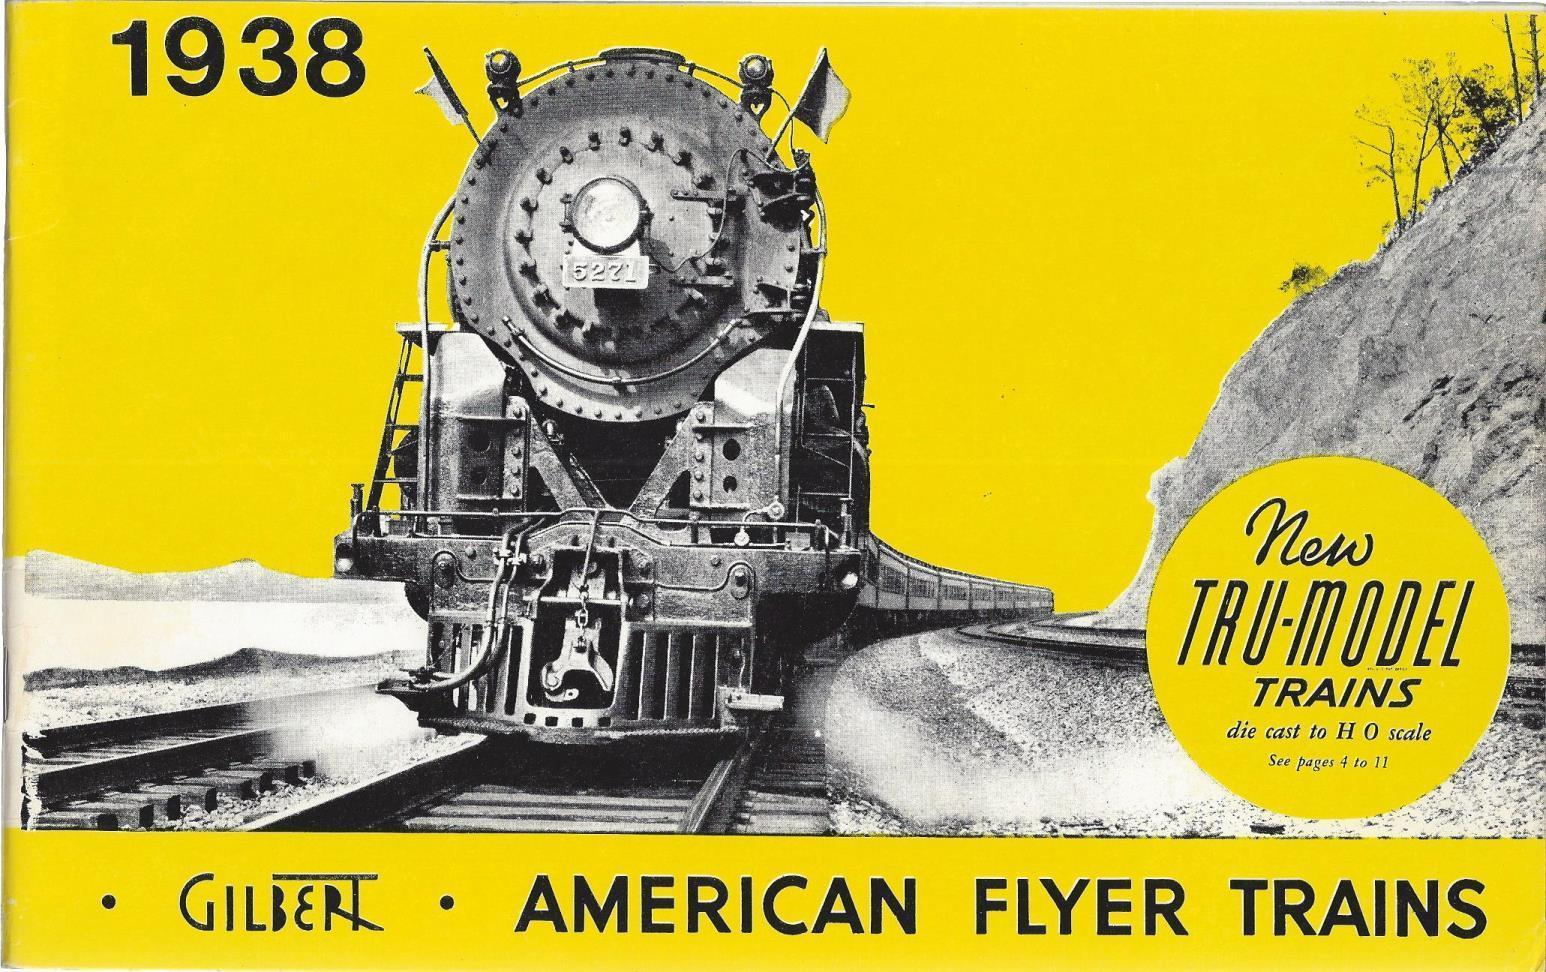 American Flyer Trains 1938 (1975 Reproduction), Gilbert